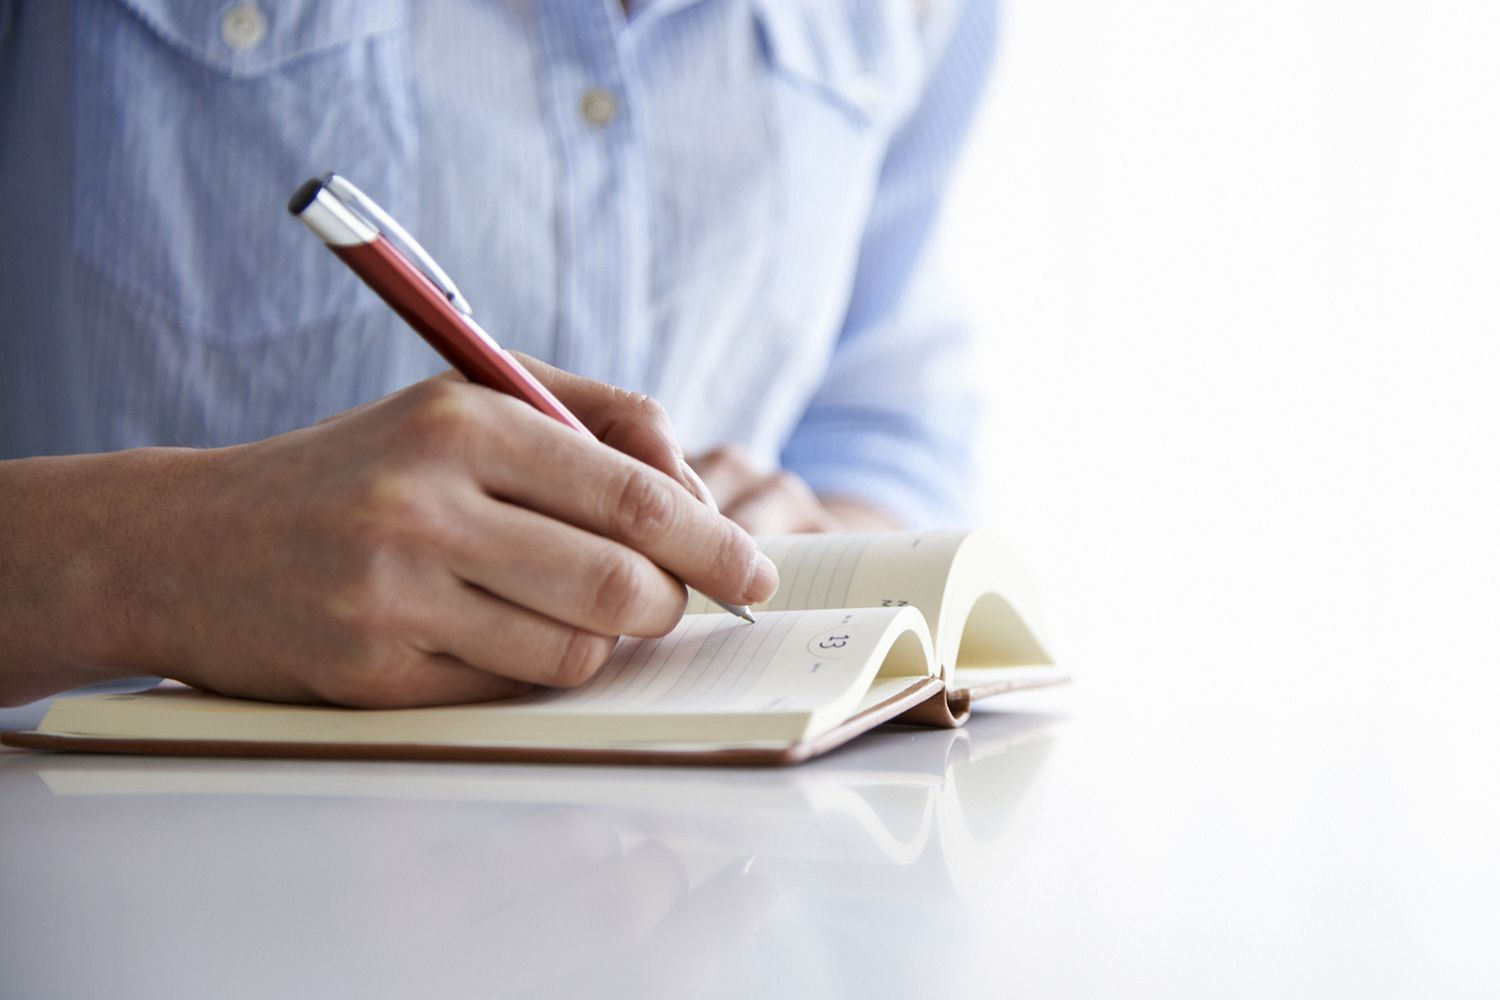 Close up of hands writing in a journal